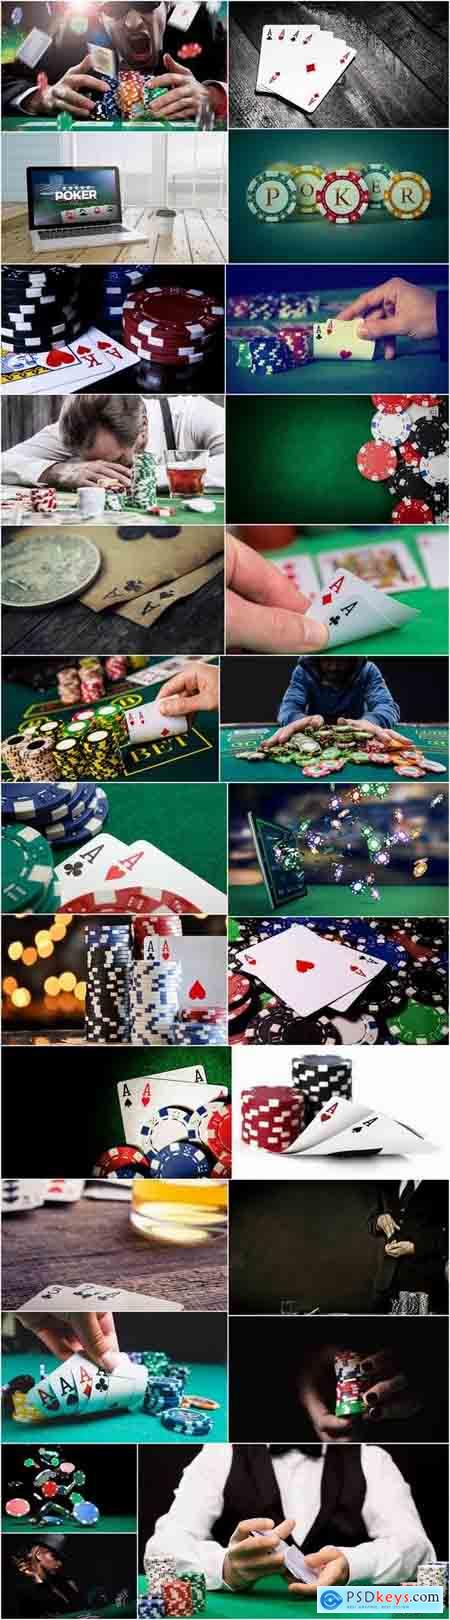 Playing cards poker royal flush payoff rate table games 25 HQ Jpeg